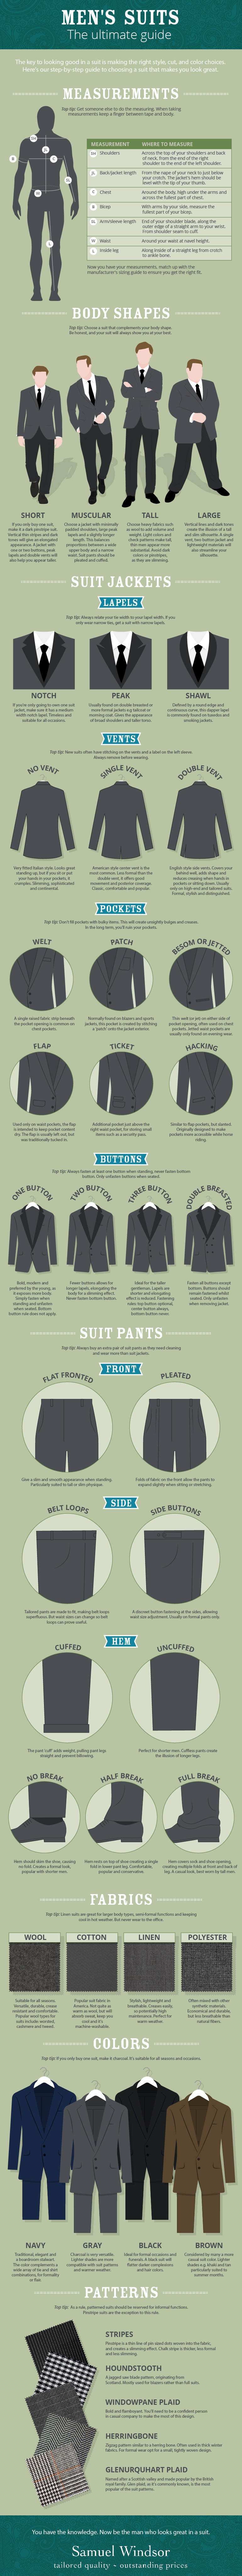 One button, two button, three button, four? The Comprehensive Guide to Men's Suits - Infographic